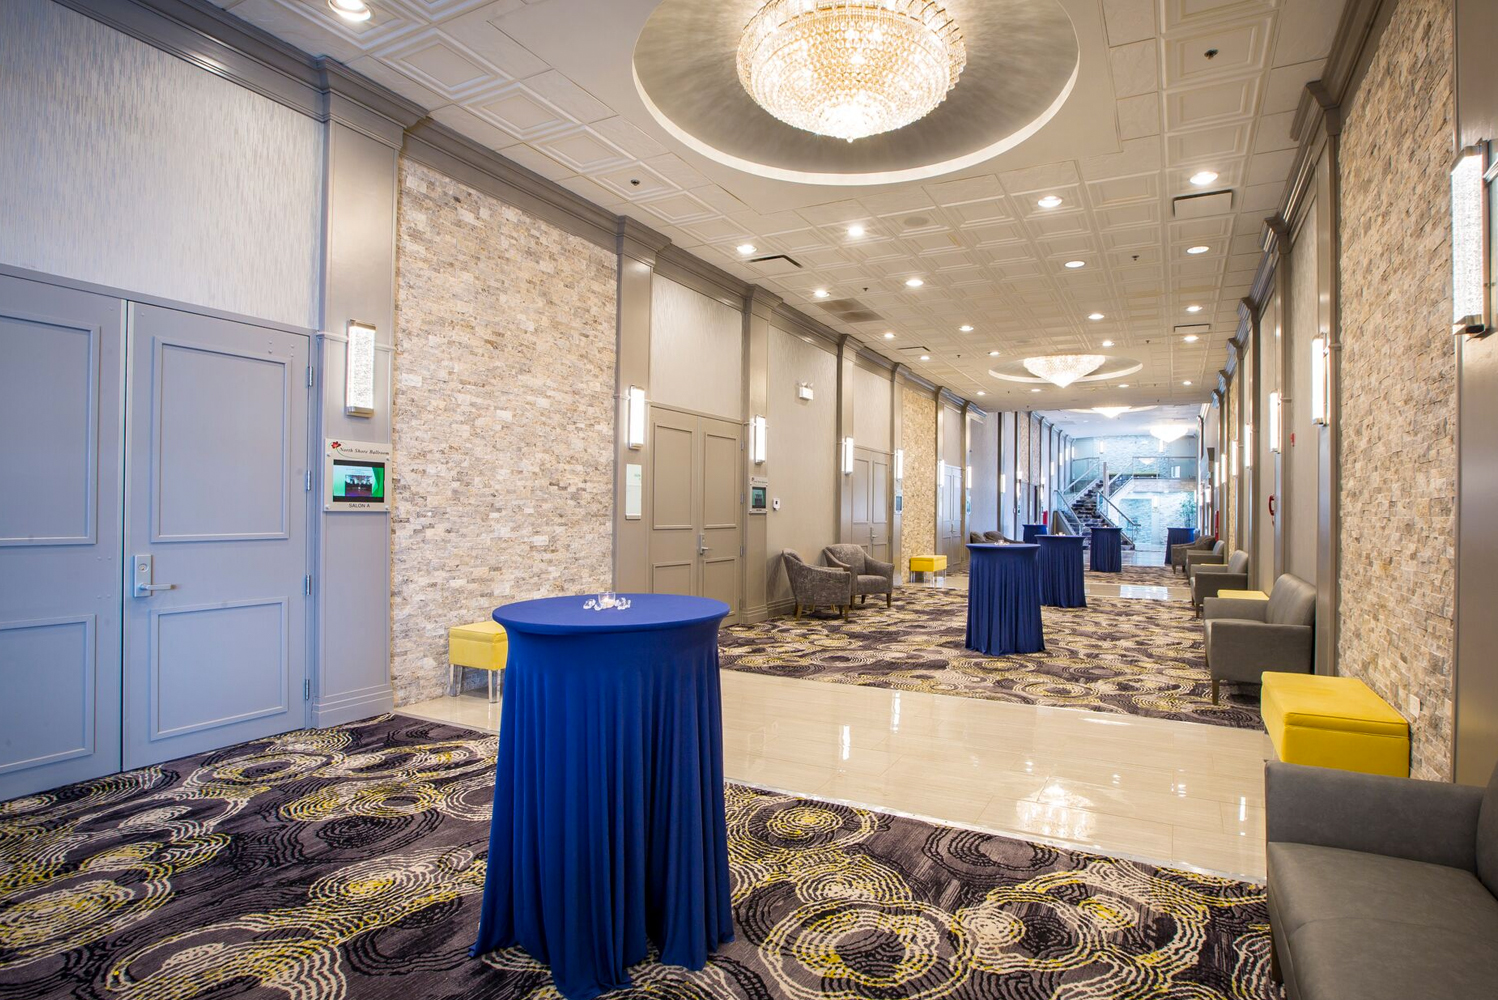 With the redesign, the 15,000 square feet of pillarless event and meeting space can now be divided into eight separate meeting spaces and can accommodate up to 1,000 guests.